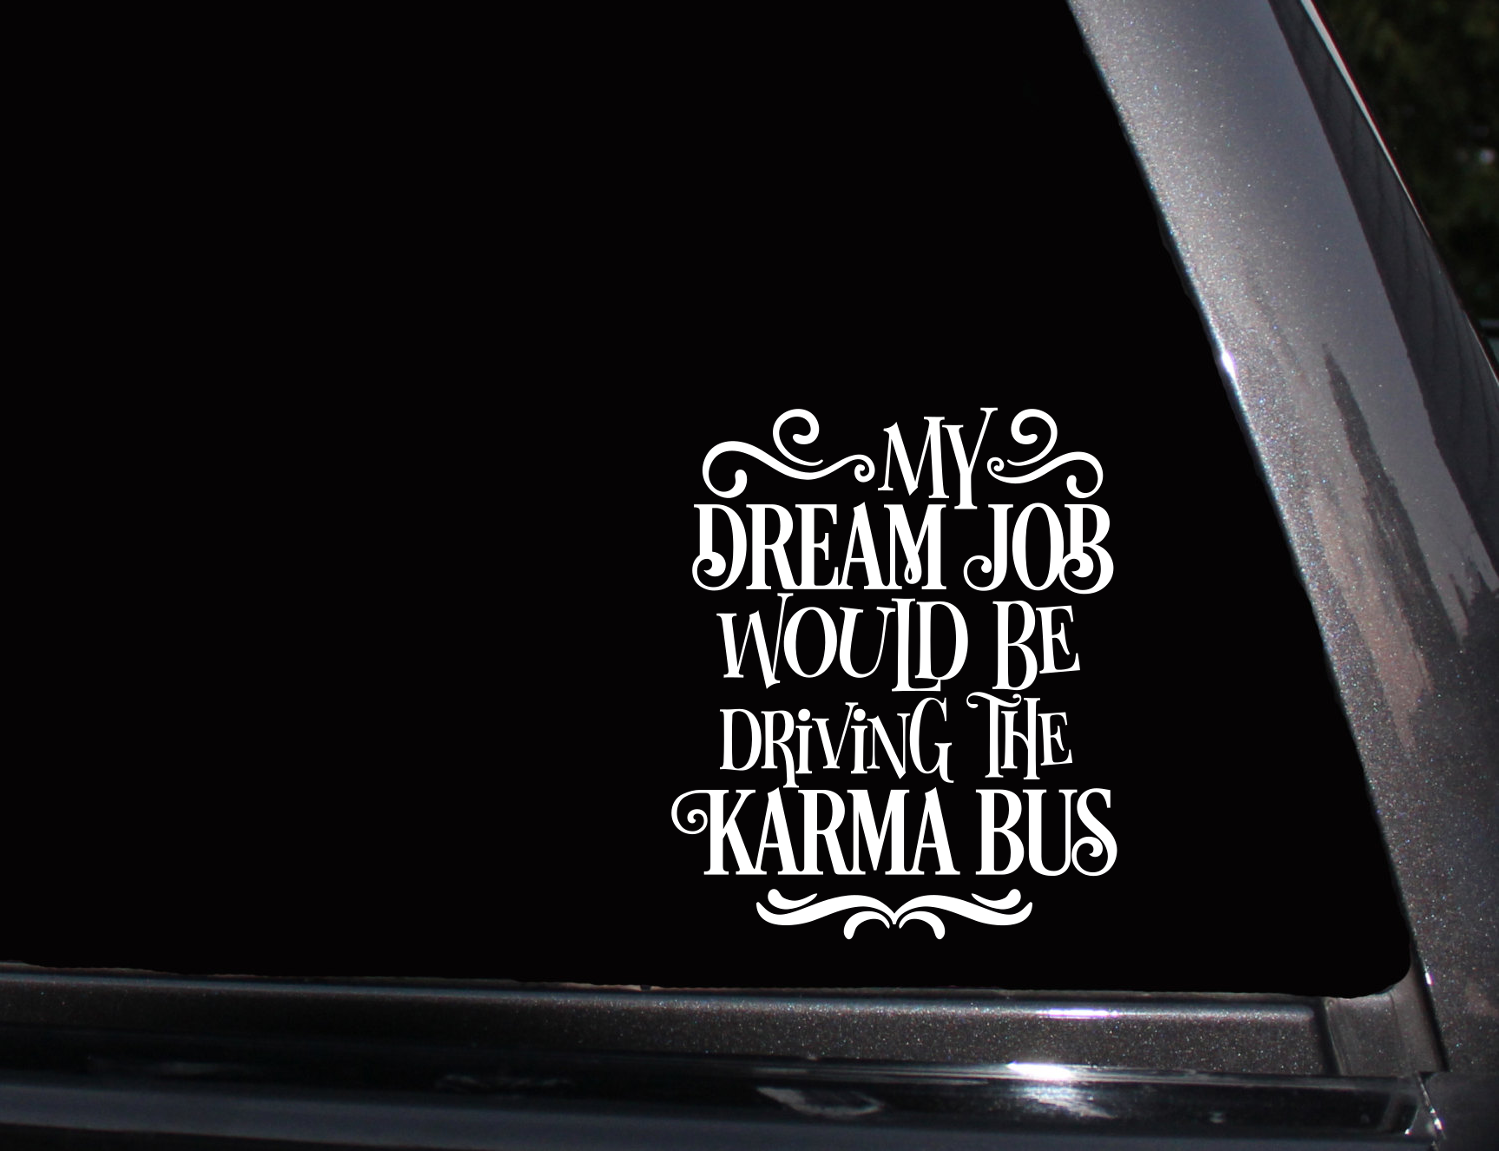 Driving The Karma Bus Vinyl Decal Phone Decal Laptop Decal Wall Decal Car Decal Sticker Car Decals Phone Decals Laptop Decal [ 1151 x 1500 Pixel ]